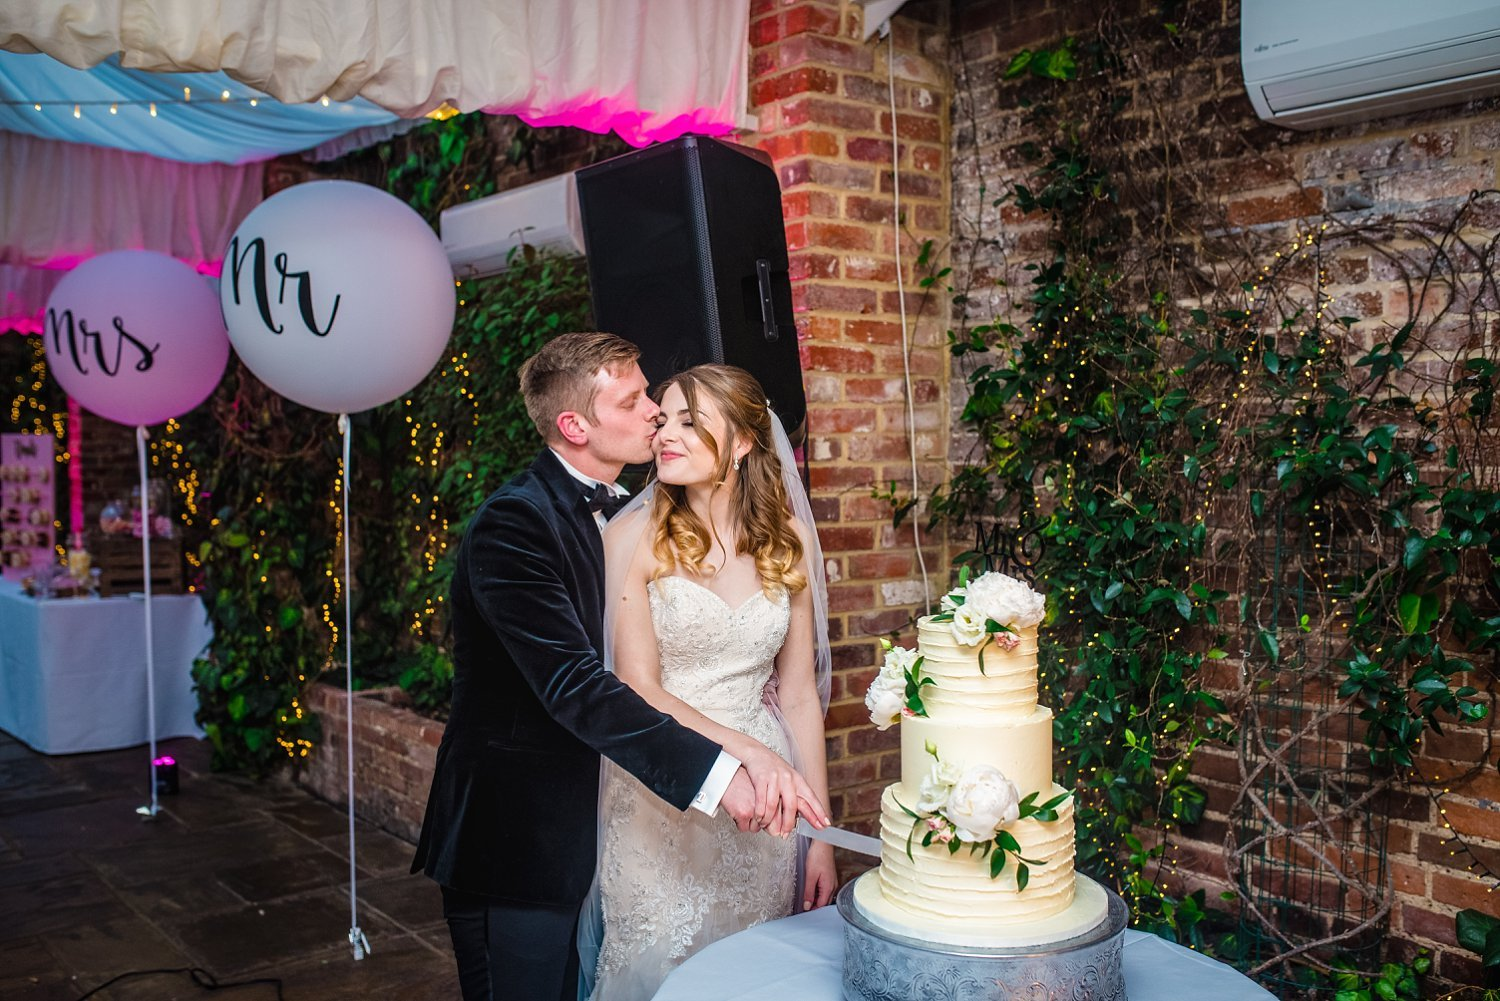 Northbrook Park Wedding - bride and groom are cutting a cake. husband gives her wife a kiss on a cheek